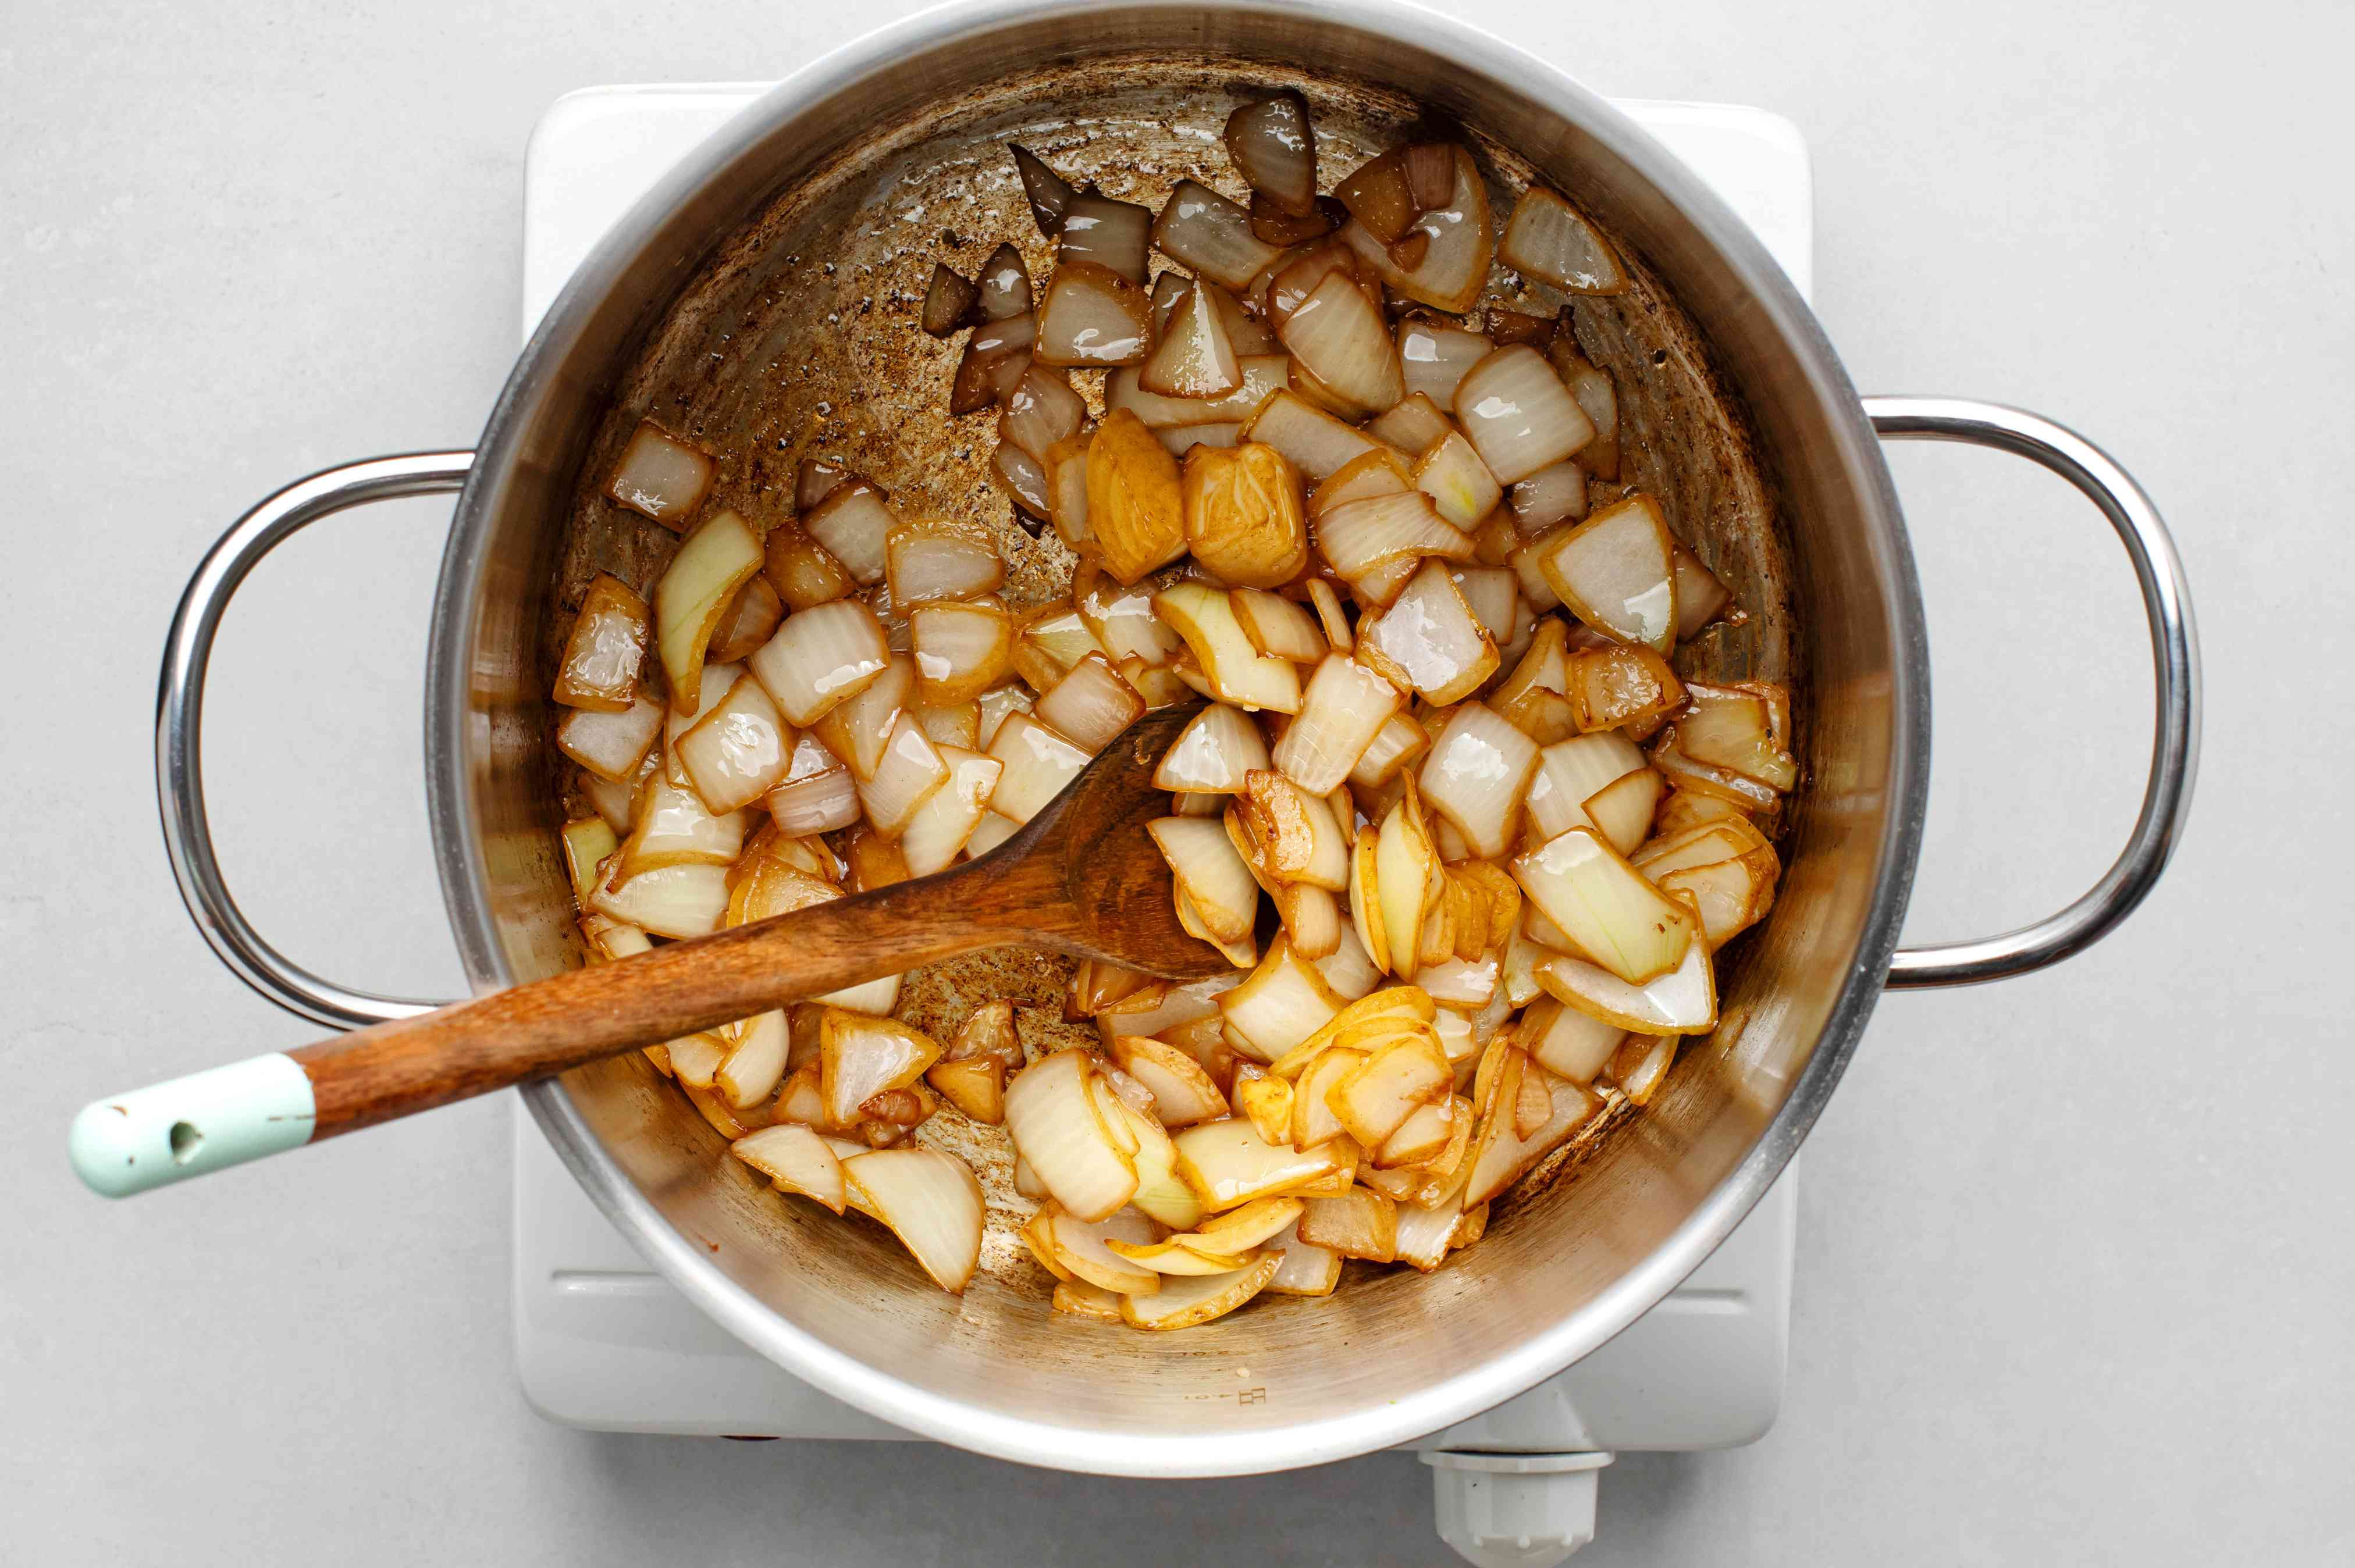 Onions added to the pot